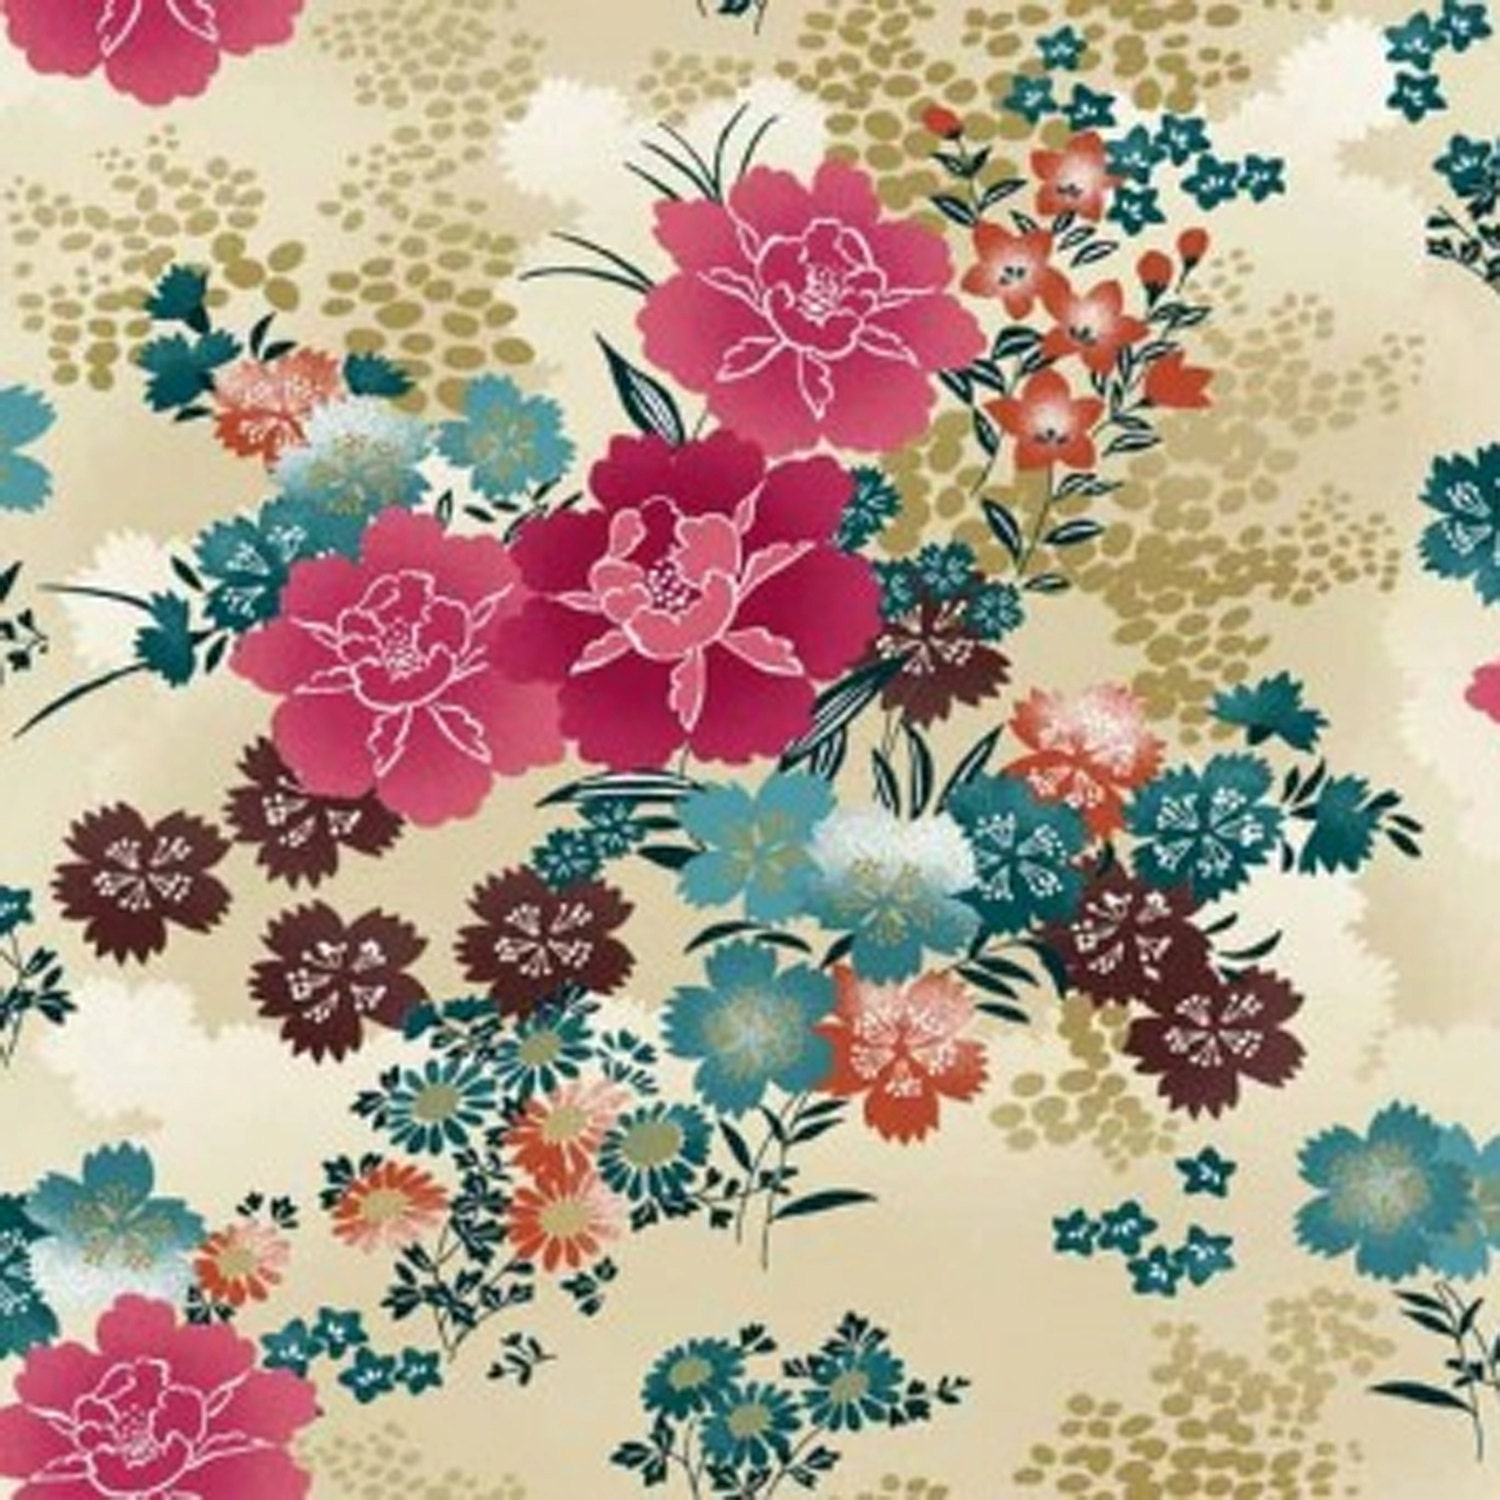 Flower Japanese Floral Print Asami Cotton Fabric by Makower